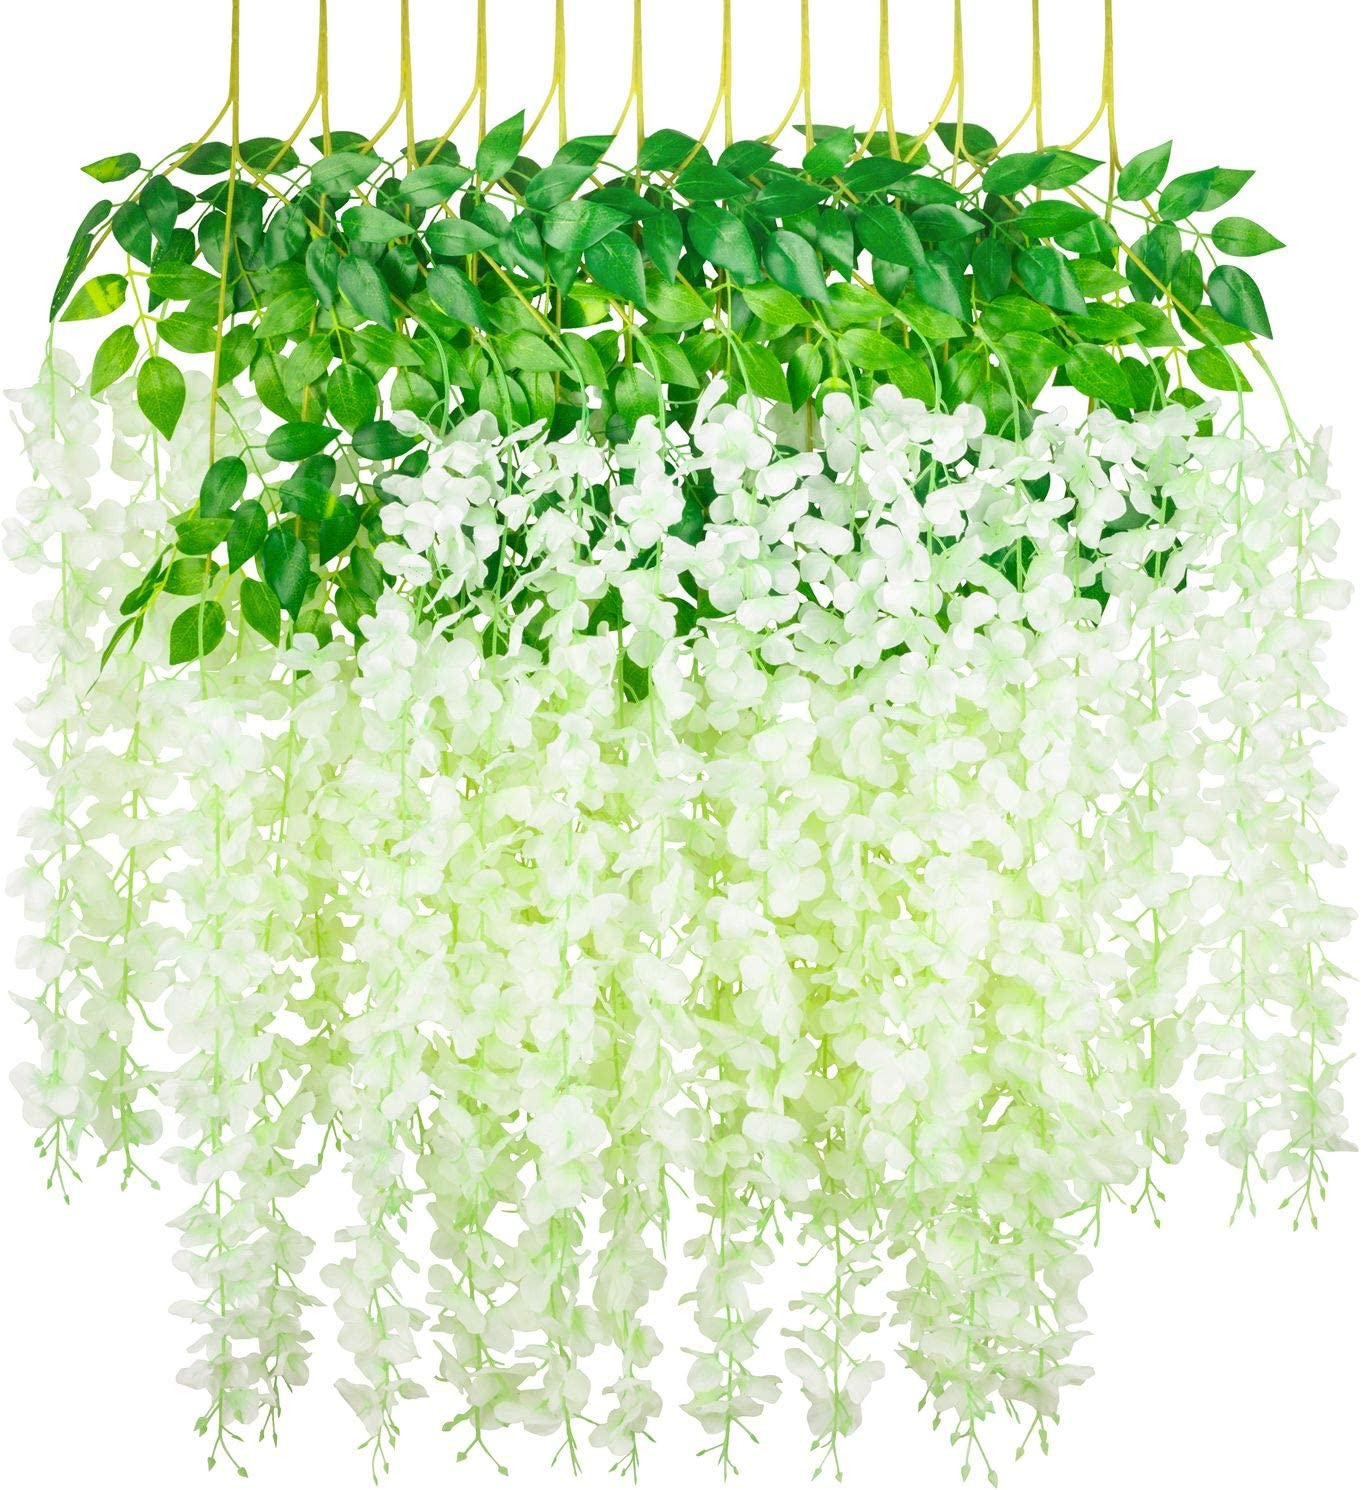 Myselfly 12 Pieces Artificial Wisteria Super-cheap Flower Silk Hanging Industry No. 1